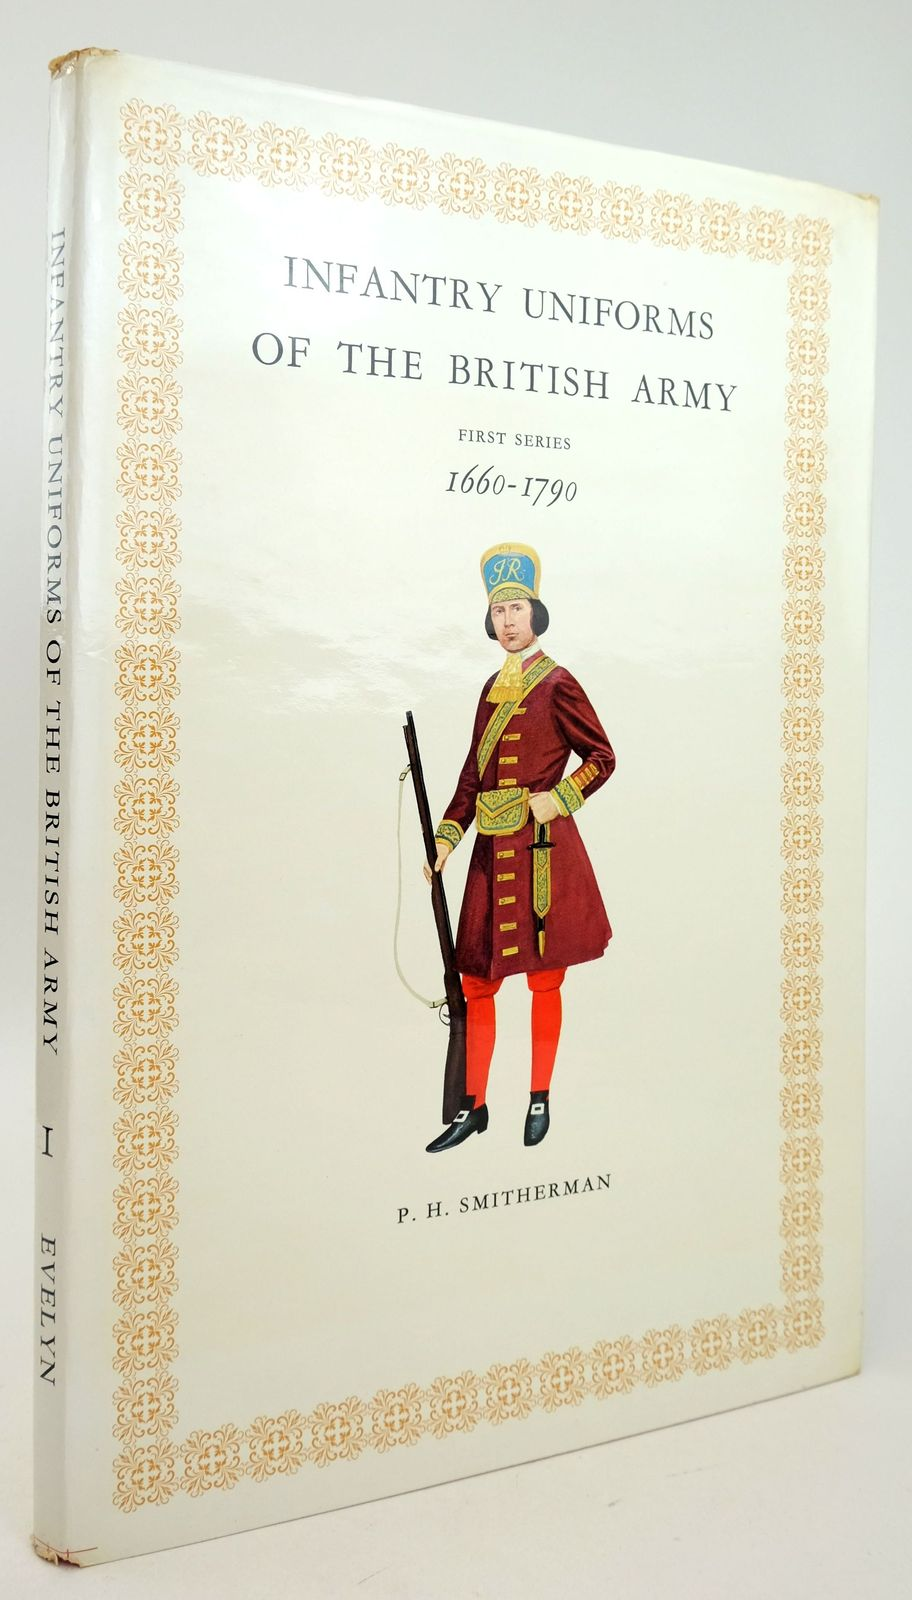 Photo of INFANTRY UNIFORMS OF THE BRITISH ARMY 1660-1790 written by Smitherman, P.H. illustrated by Smitherman, P.H. published by Hugh Evelyn (STOCK CODE: 1819977)  for sale by Stella & Rose's Books